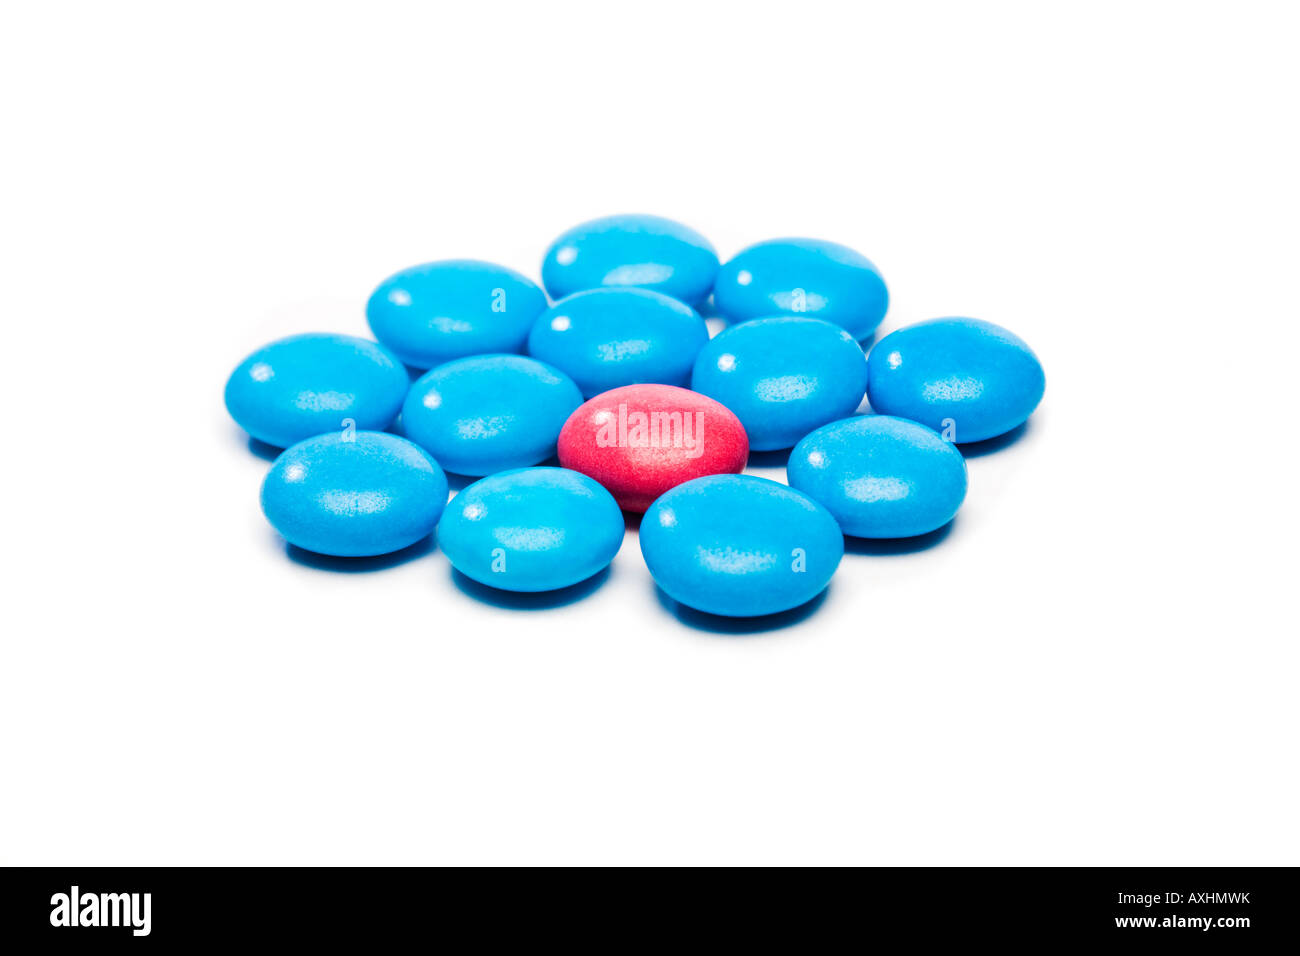 Coloured candy used to show the concept of protection, inclusion or individuality - Stock Image